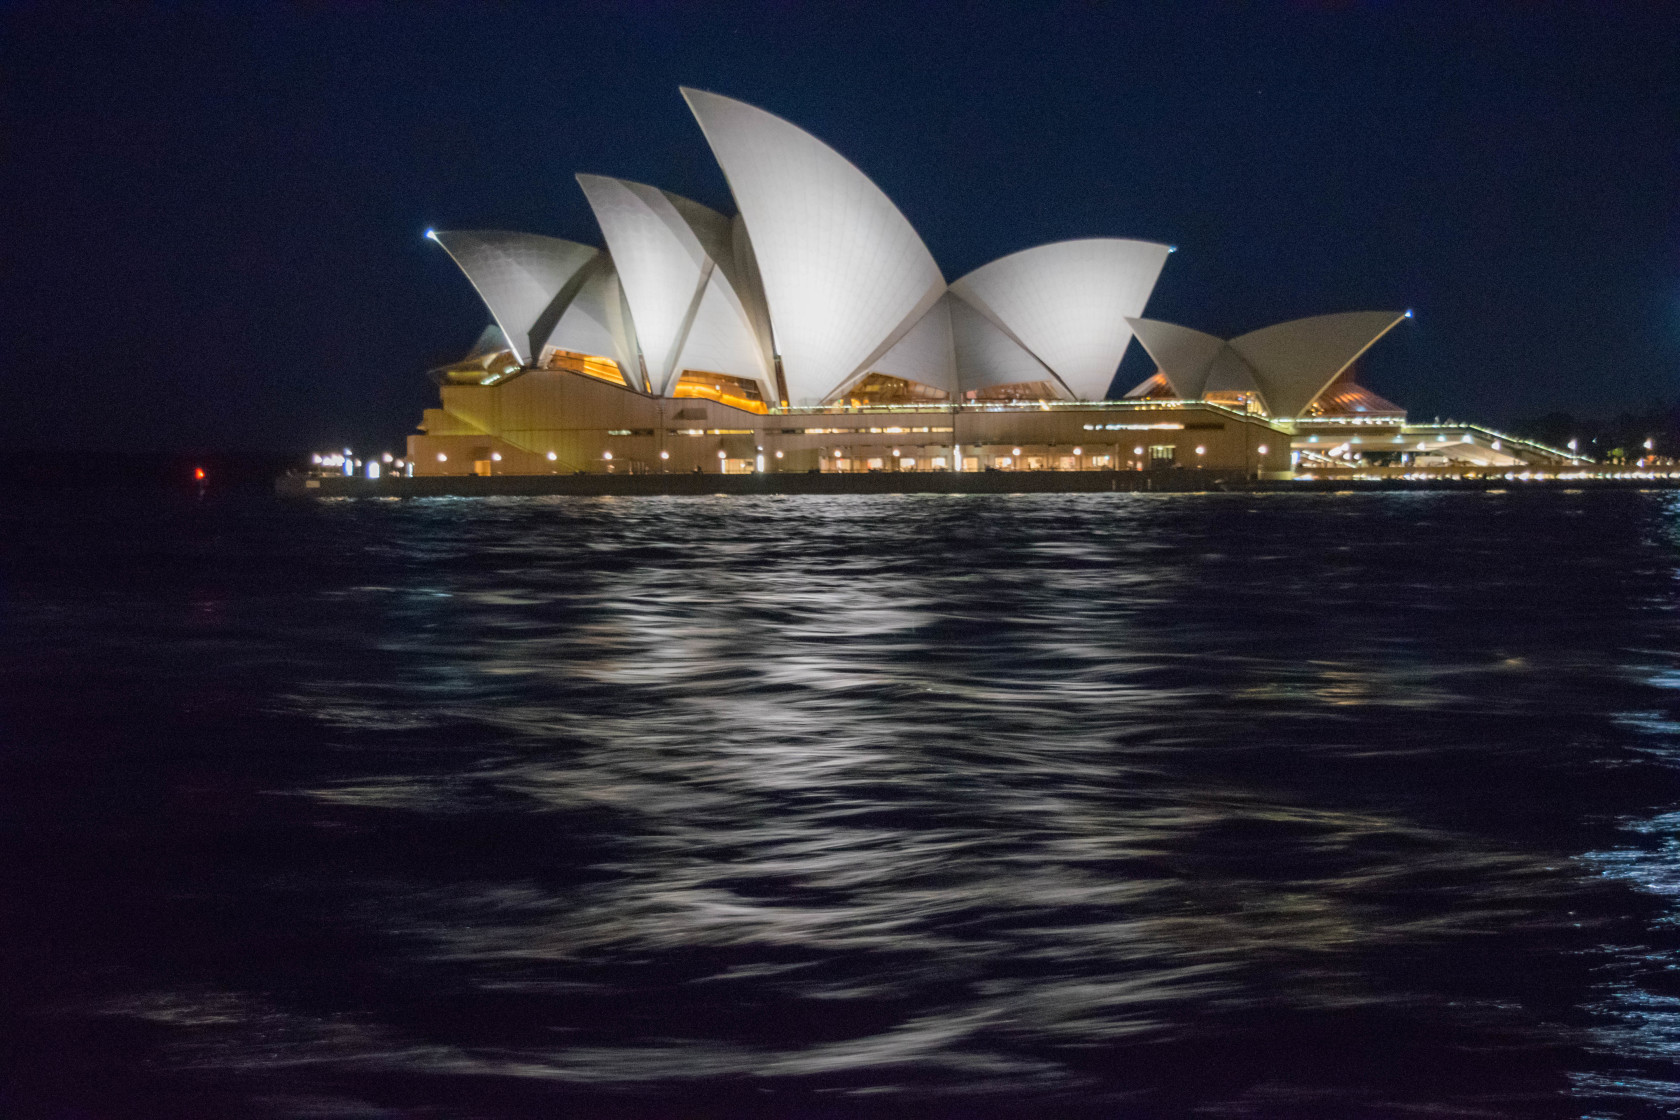 Opera House From water night motion